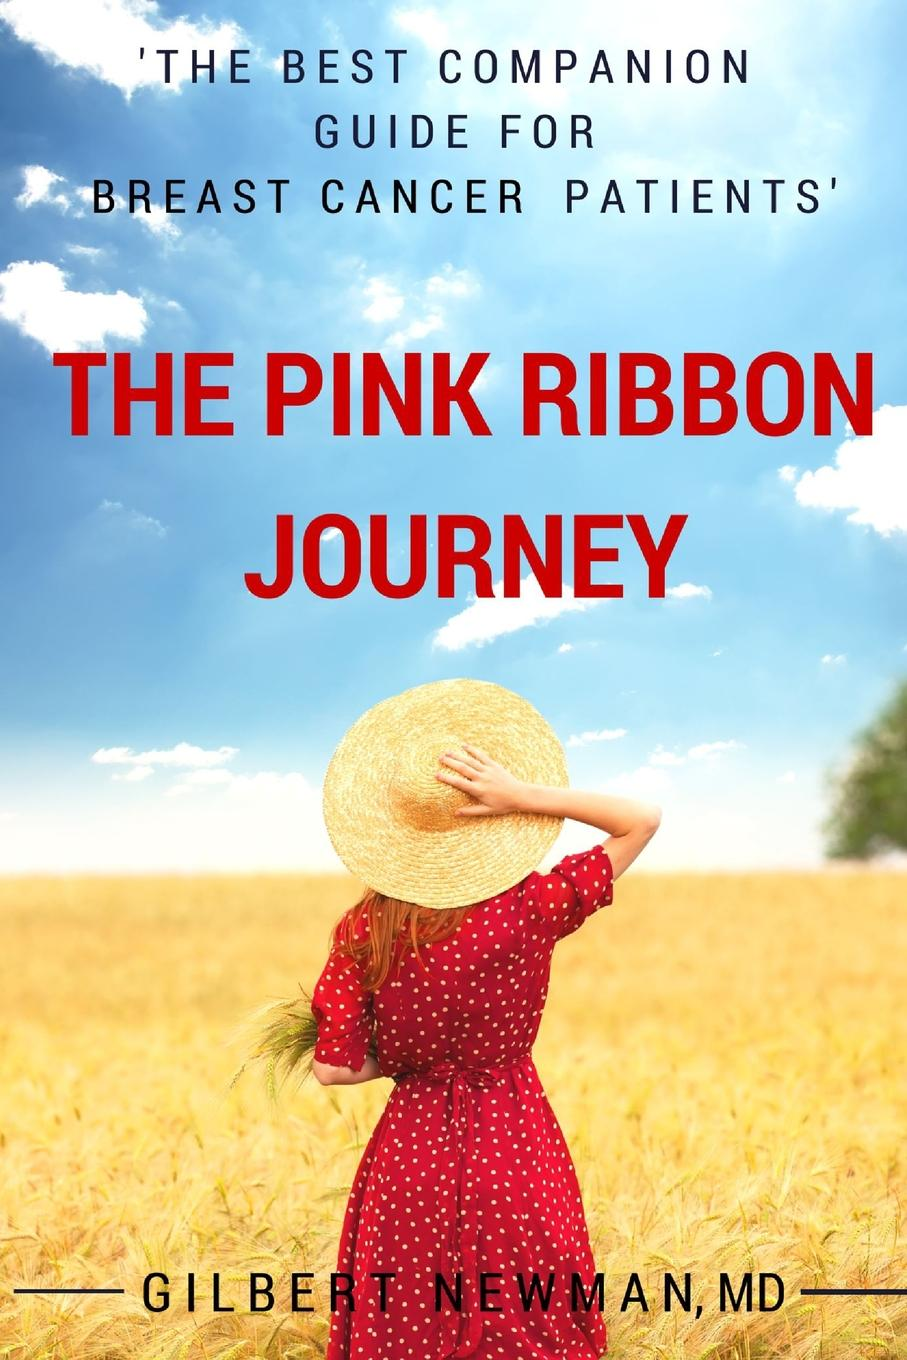 MD Gilbert Newman The Pink Ribbon Journey. The Best Companion Guide for Breast Cancer Patients how to check for breast cancer lumps adopt the new test for breast cancer device